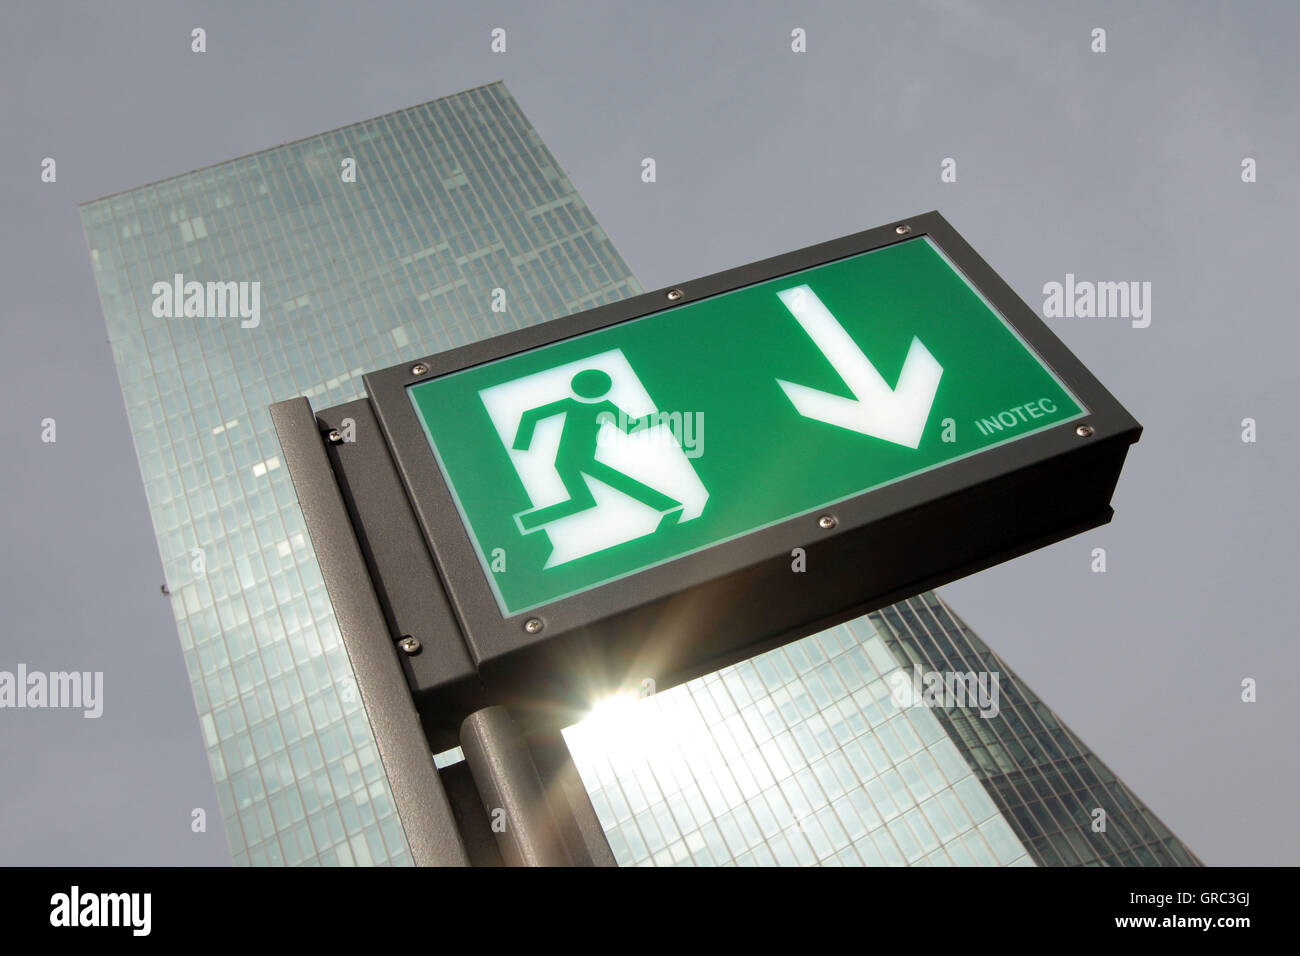 Emergency Ext Sign With Ecb European Central Bank Highrise - Stock Image